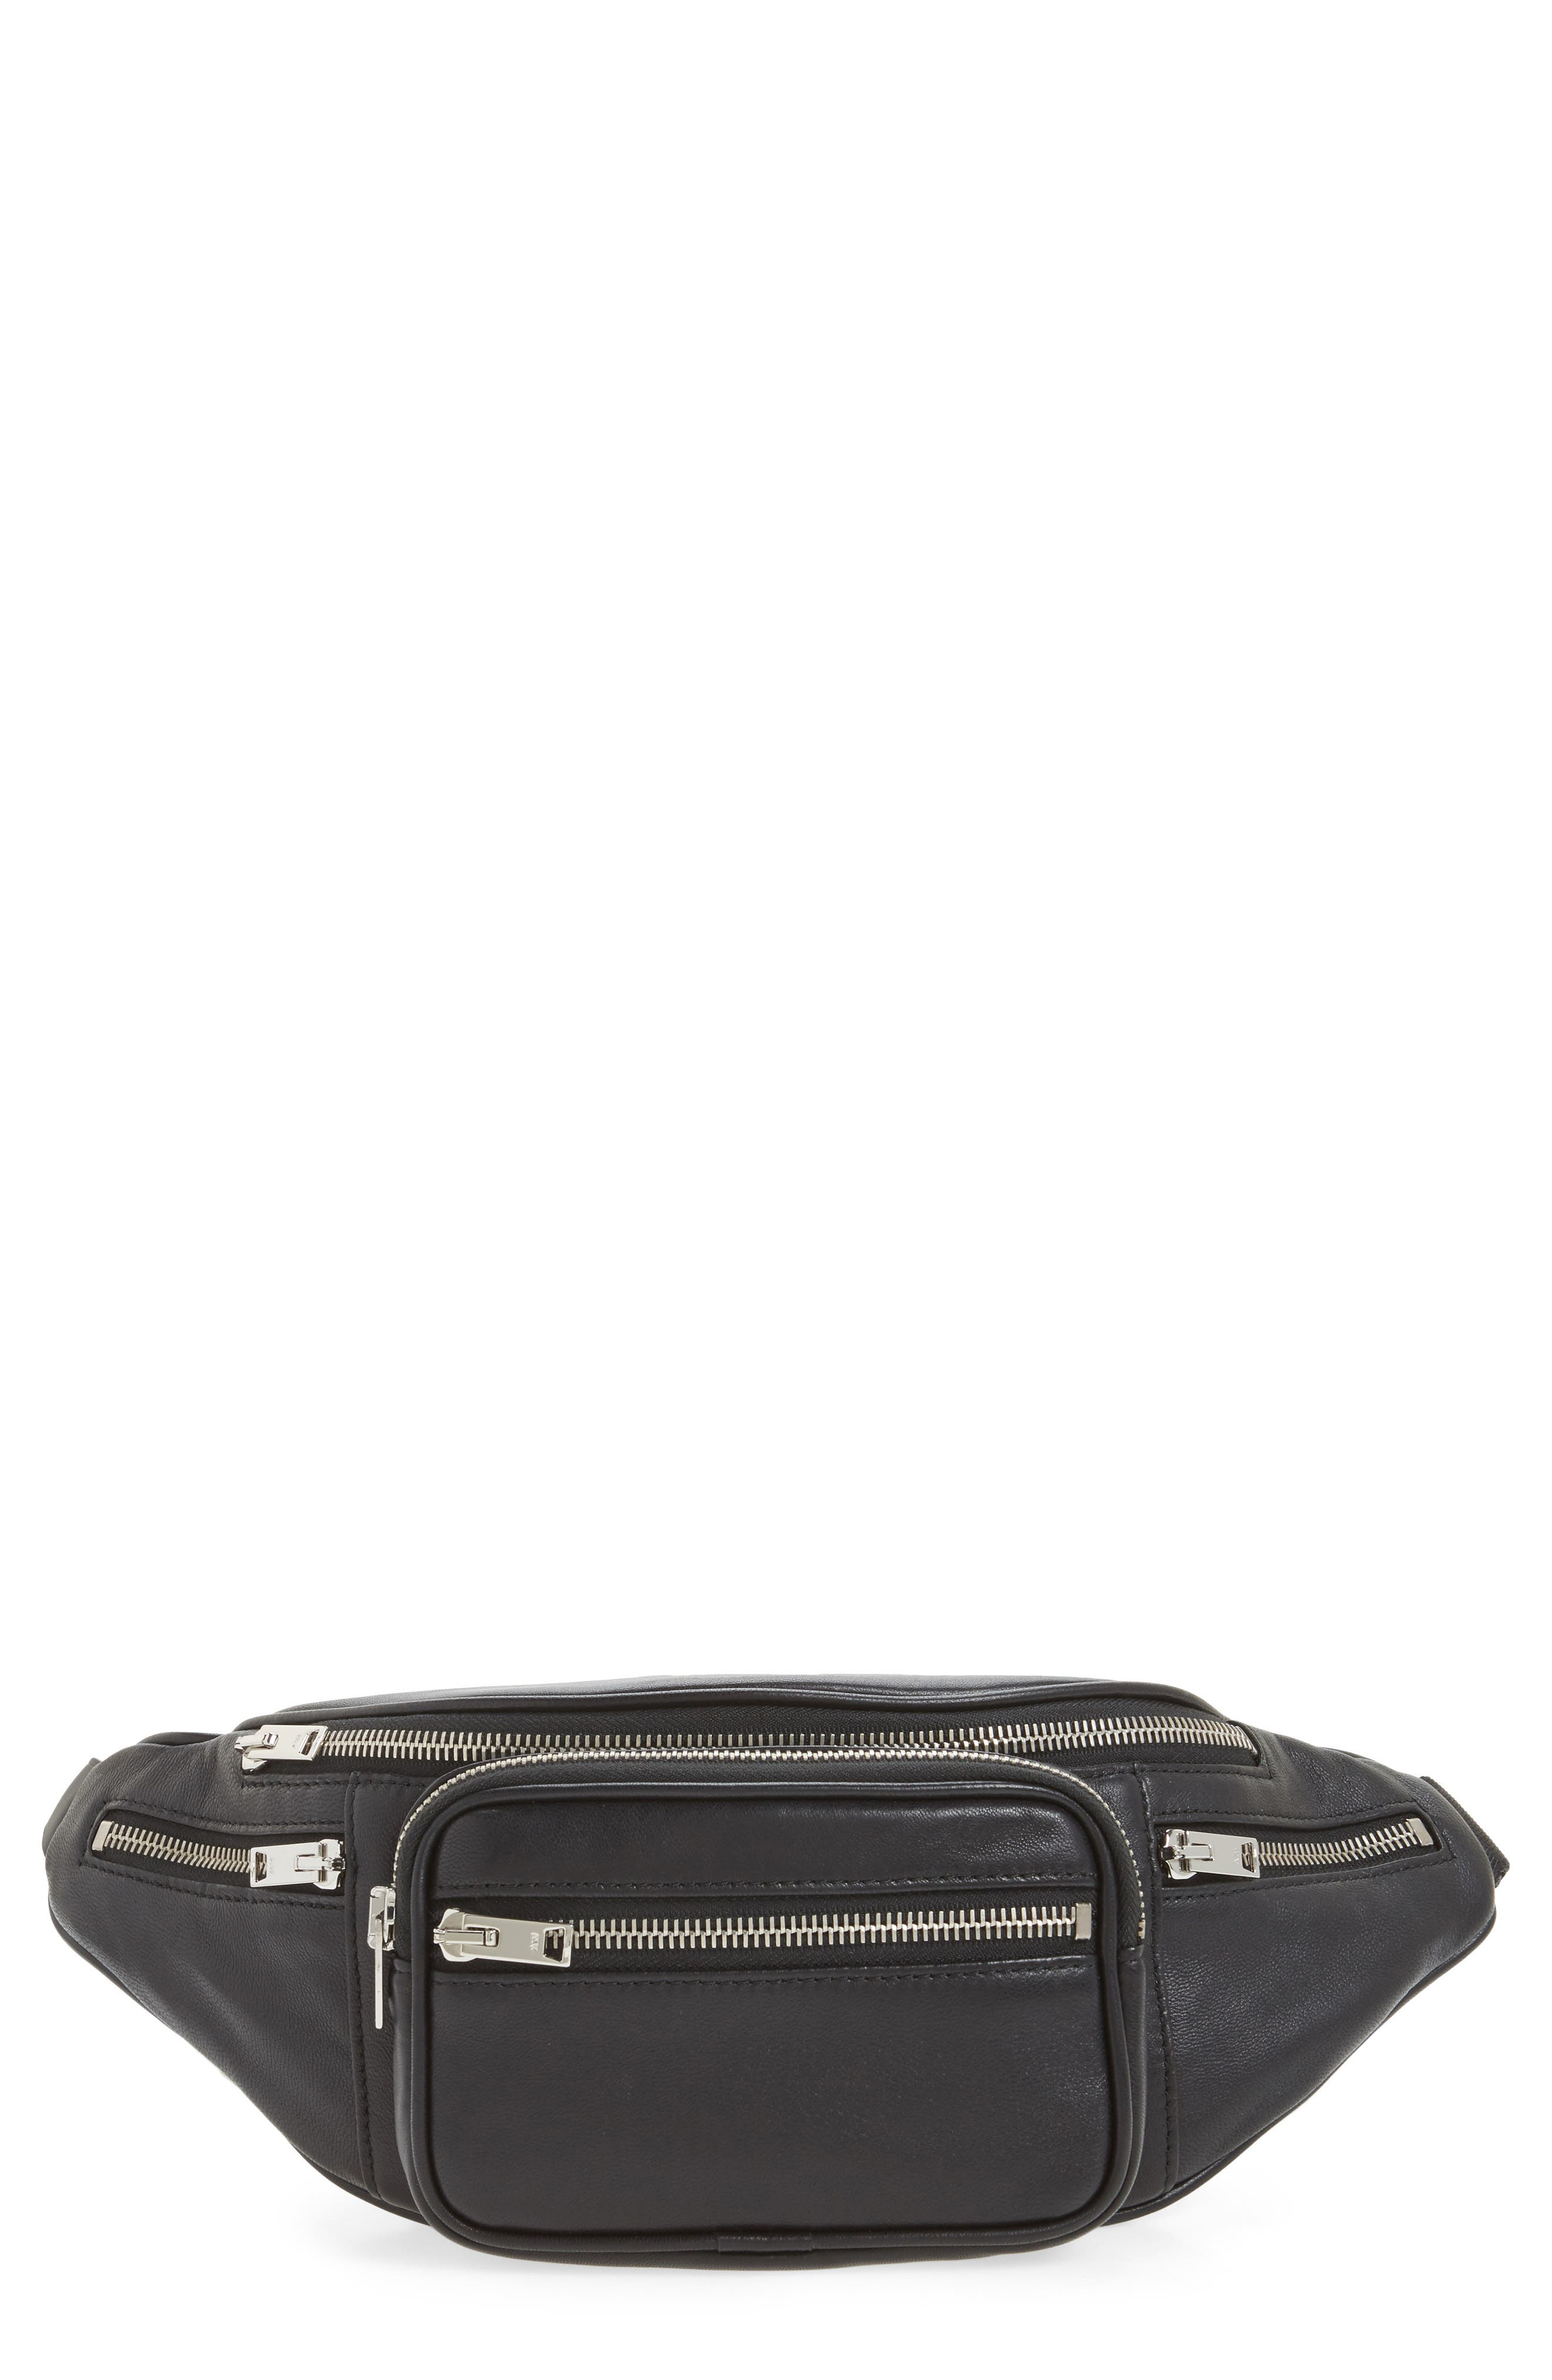 Washed Leather Fanny Pack - Black